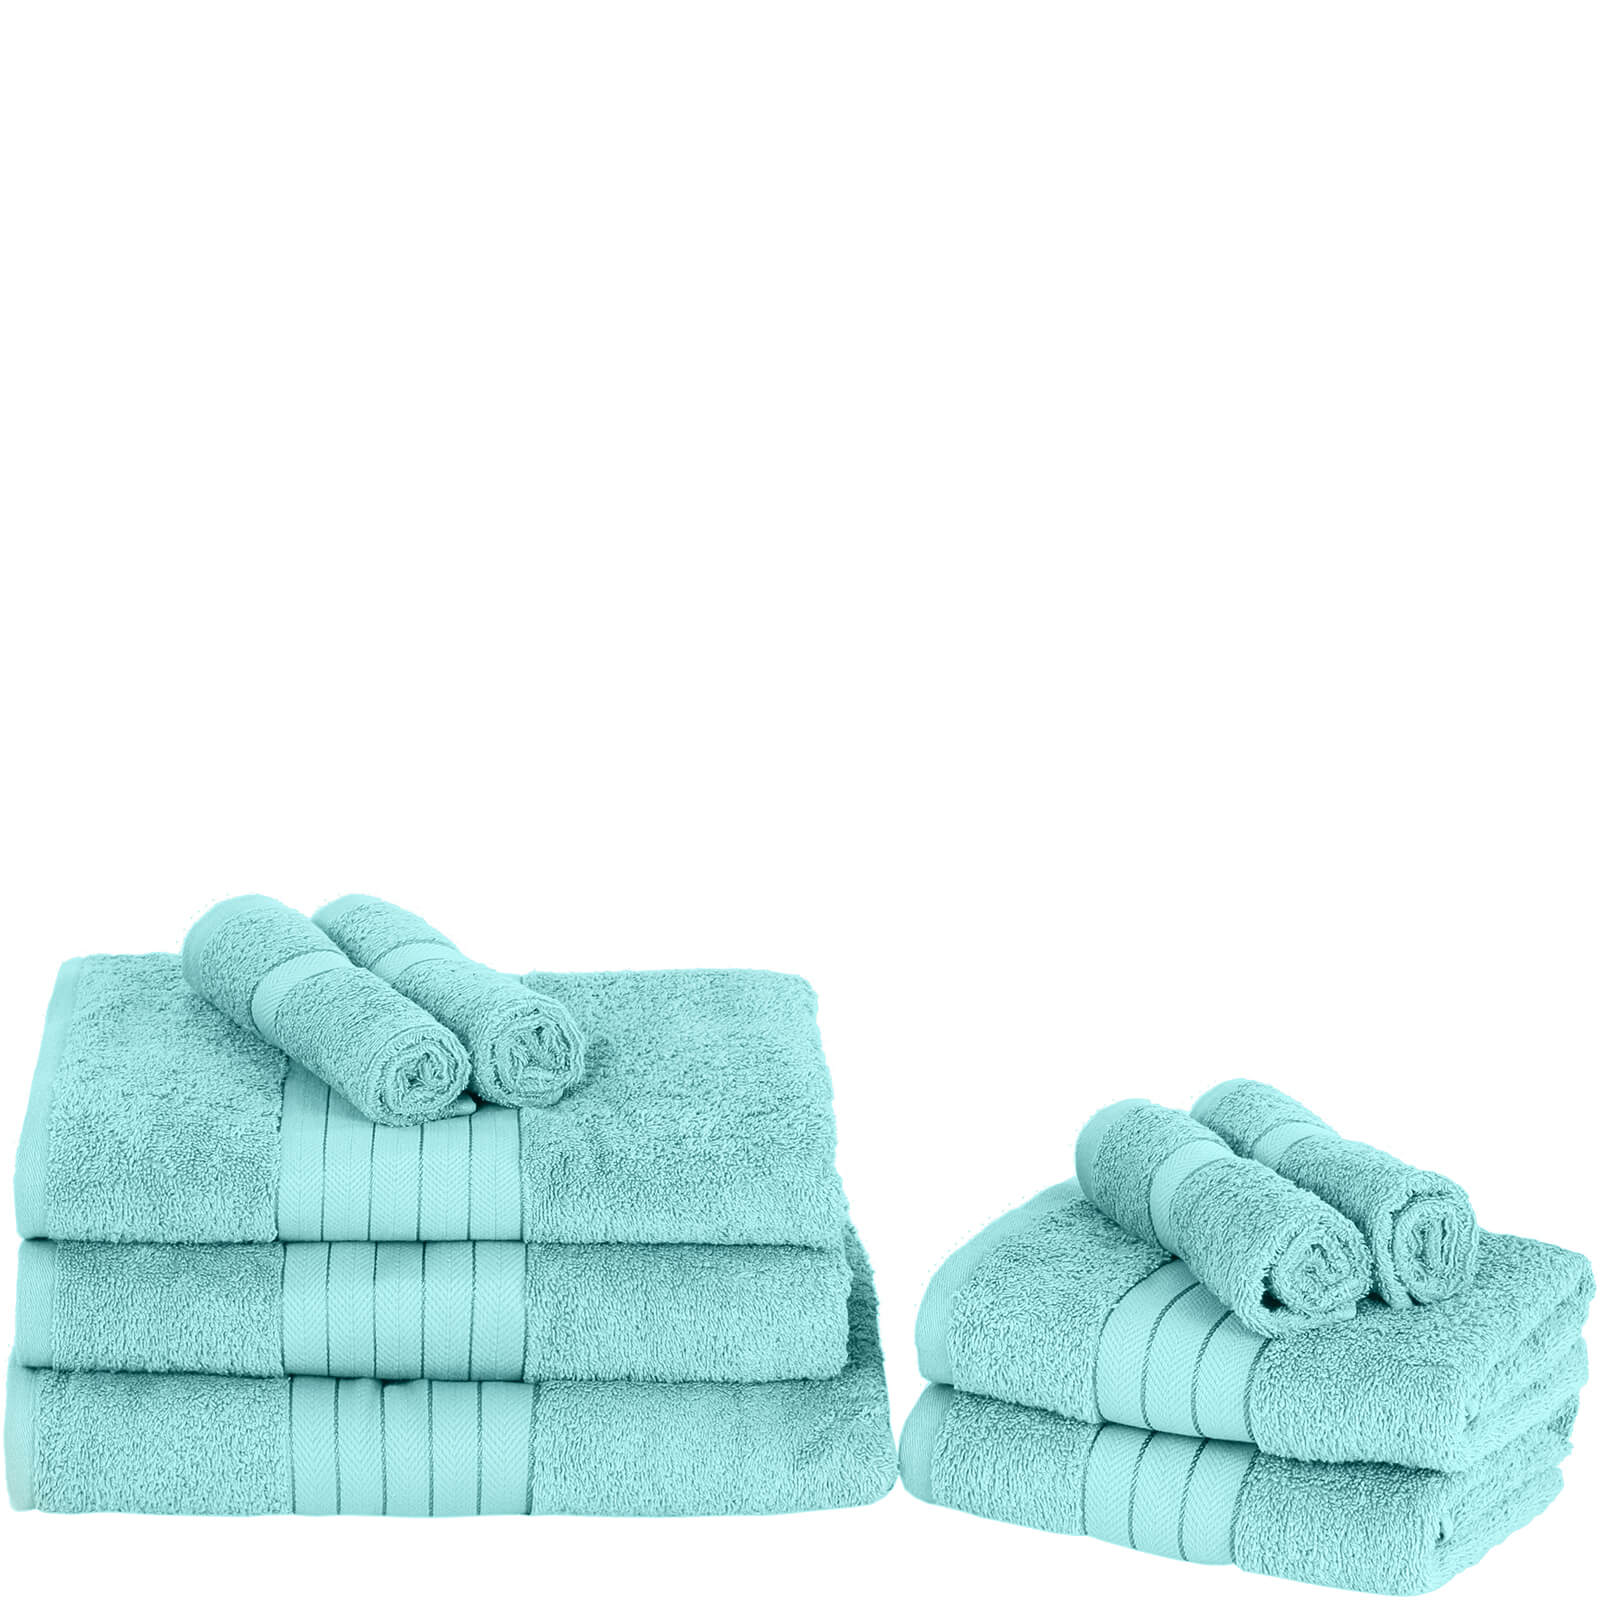 Highams 100% Egyptian Cotton 9 Piece Towel Bale (500 gsm) - Aqua